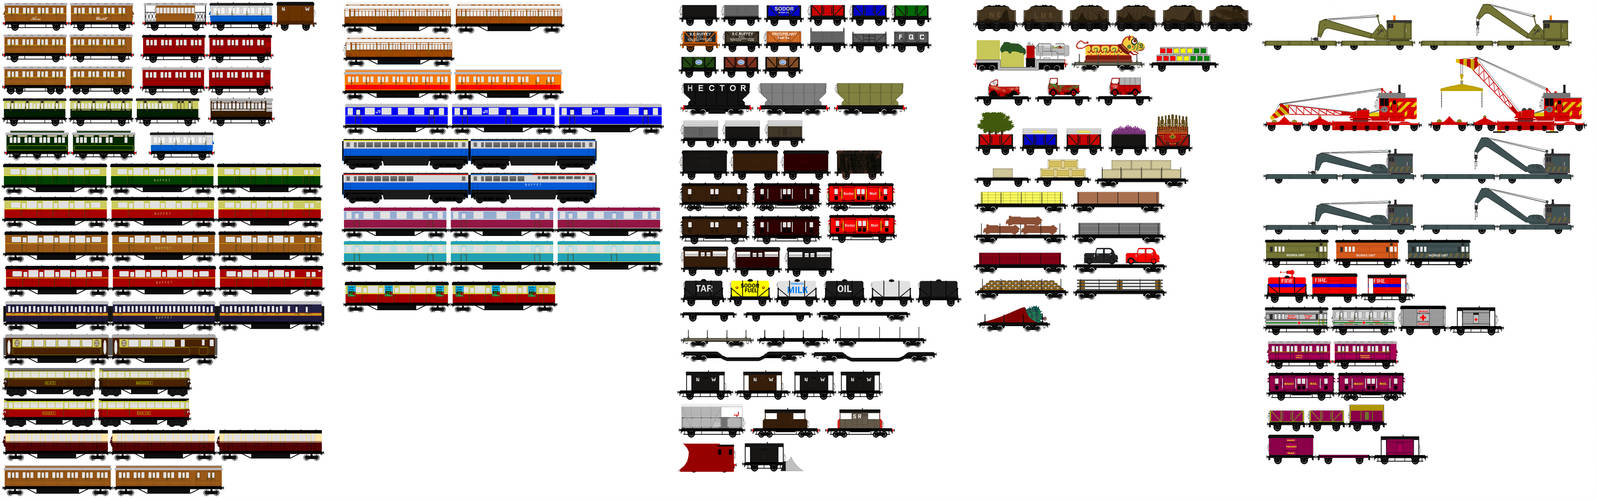 Thomas And Friends Animated Rolling Stock 1 By Jamesfan1991 On